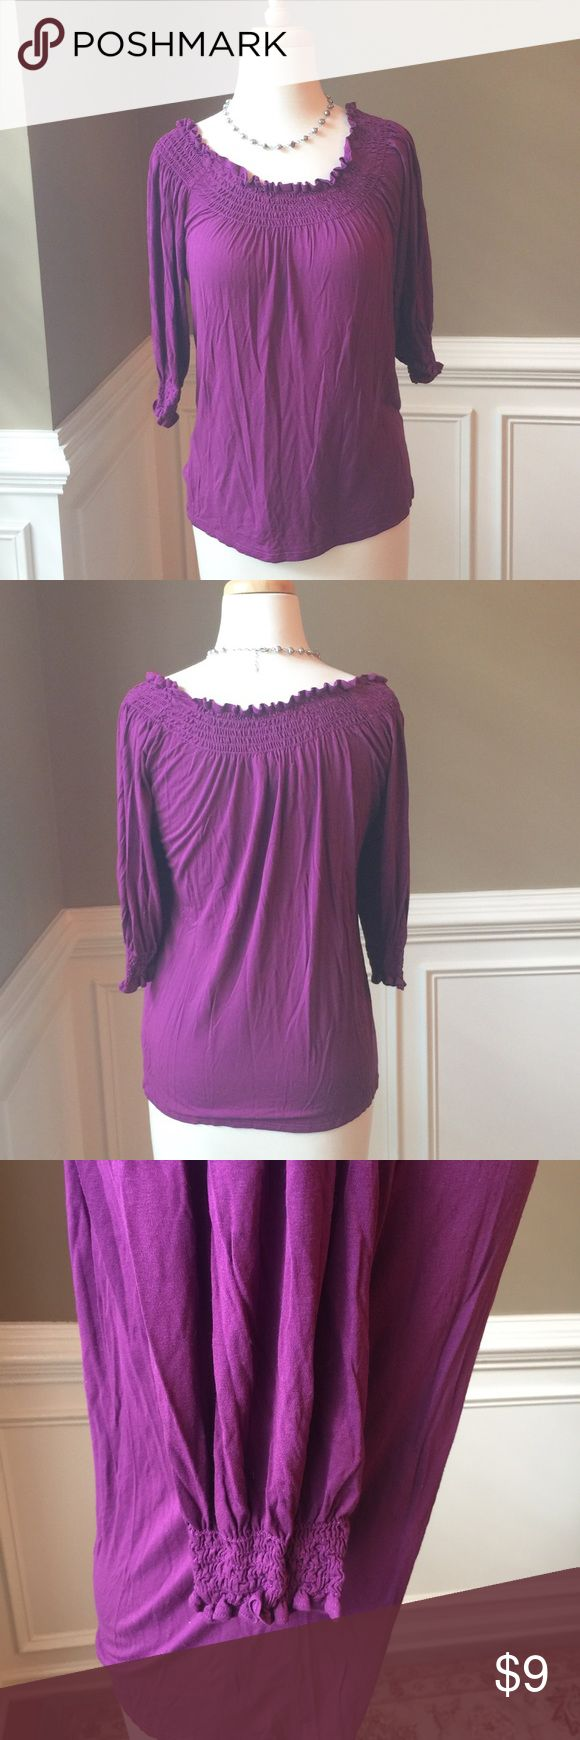 """Karen Kane purple top Pretty purple top from Karen Kane. Smocked and neckline and sleeve cuffs. Can be worn off shoulder. No rips, stains, odors. Just gentle wear. Smoke and pet free home. Approx 15"""" across bust, 22.5"""" long, 12"""" sleeves. Rayon/spandex blend. Dry clean. Bundle/make offer! Karen Kane Tops Tees - Long Sleeve"""